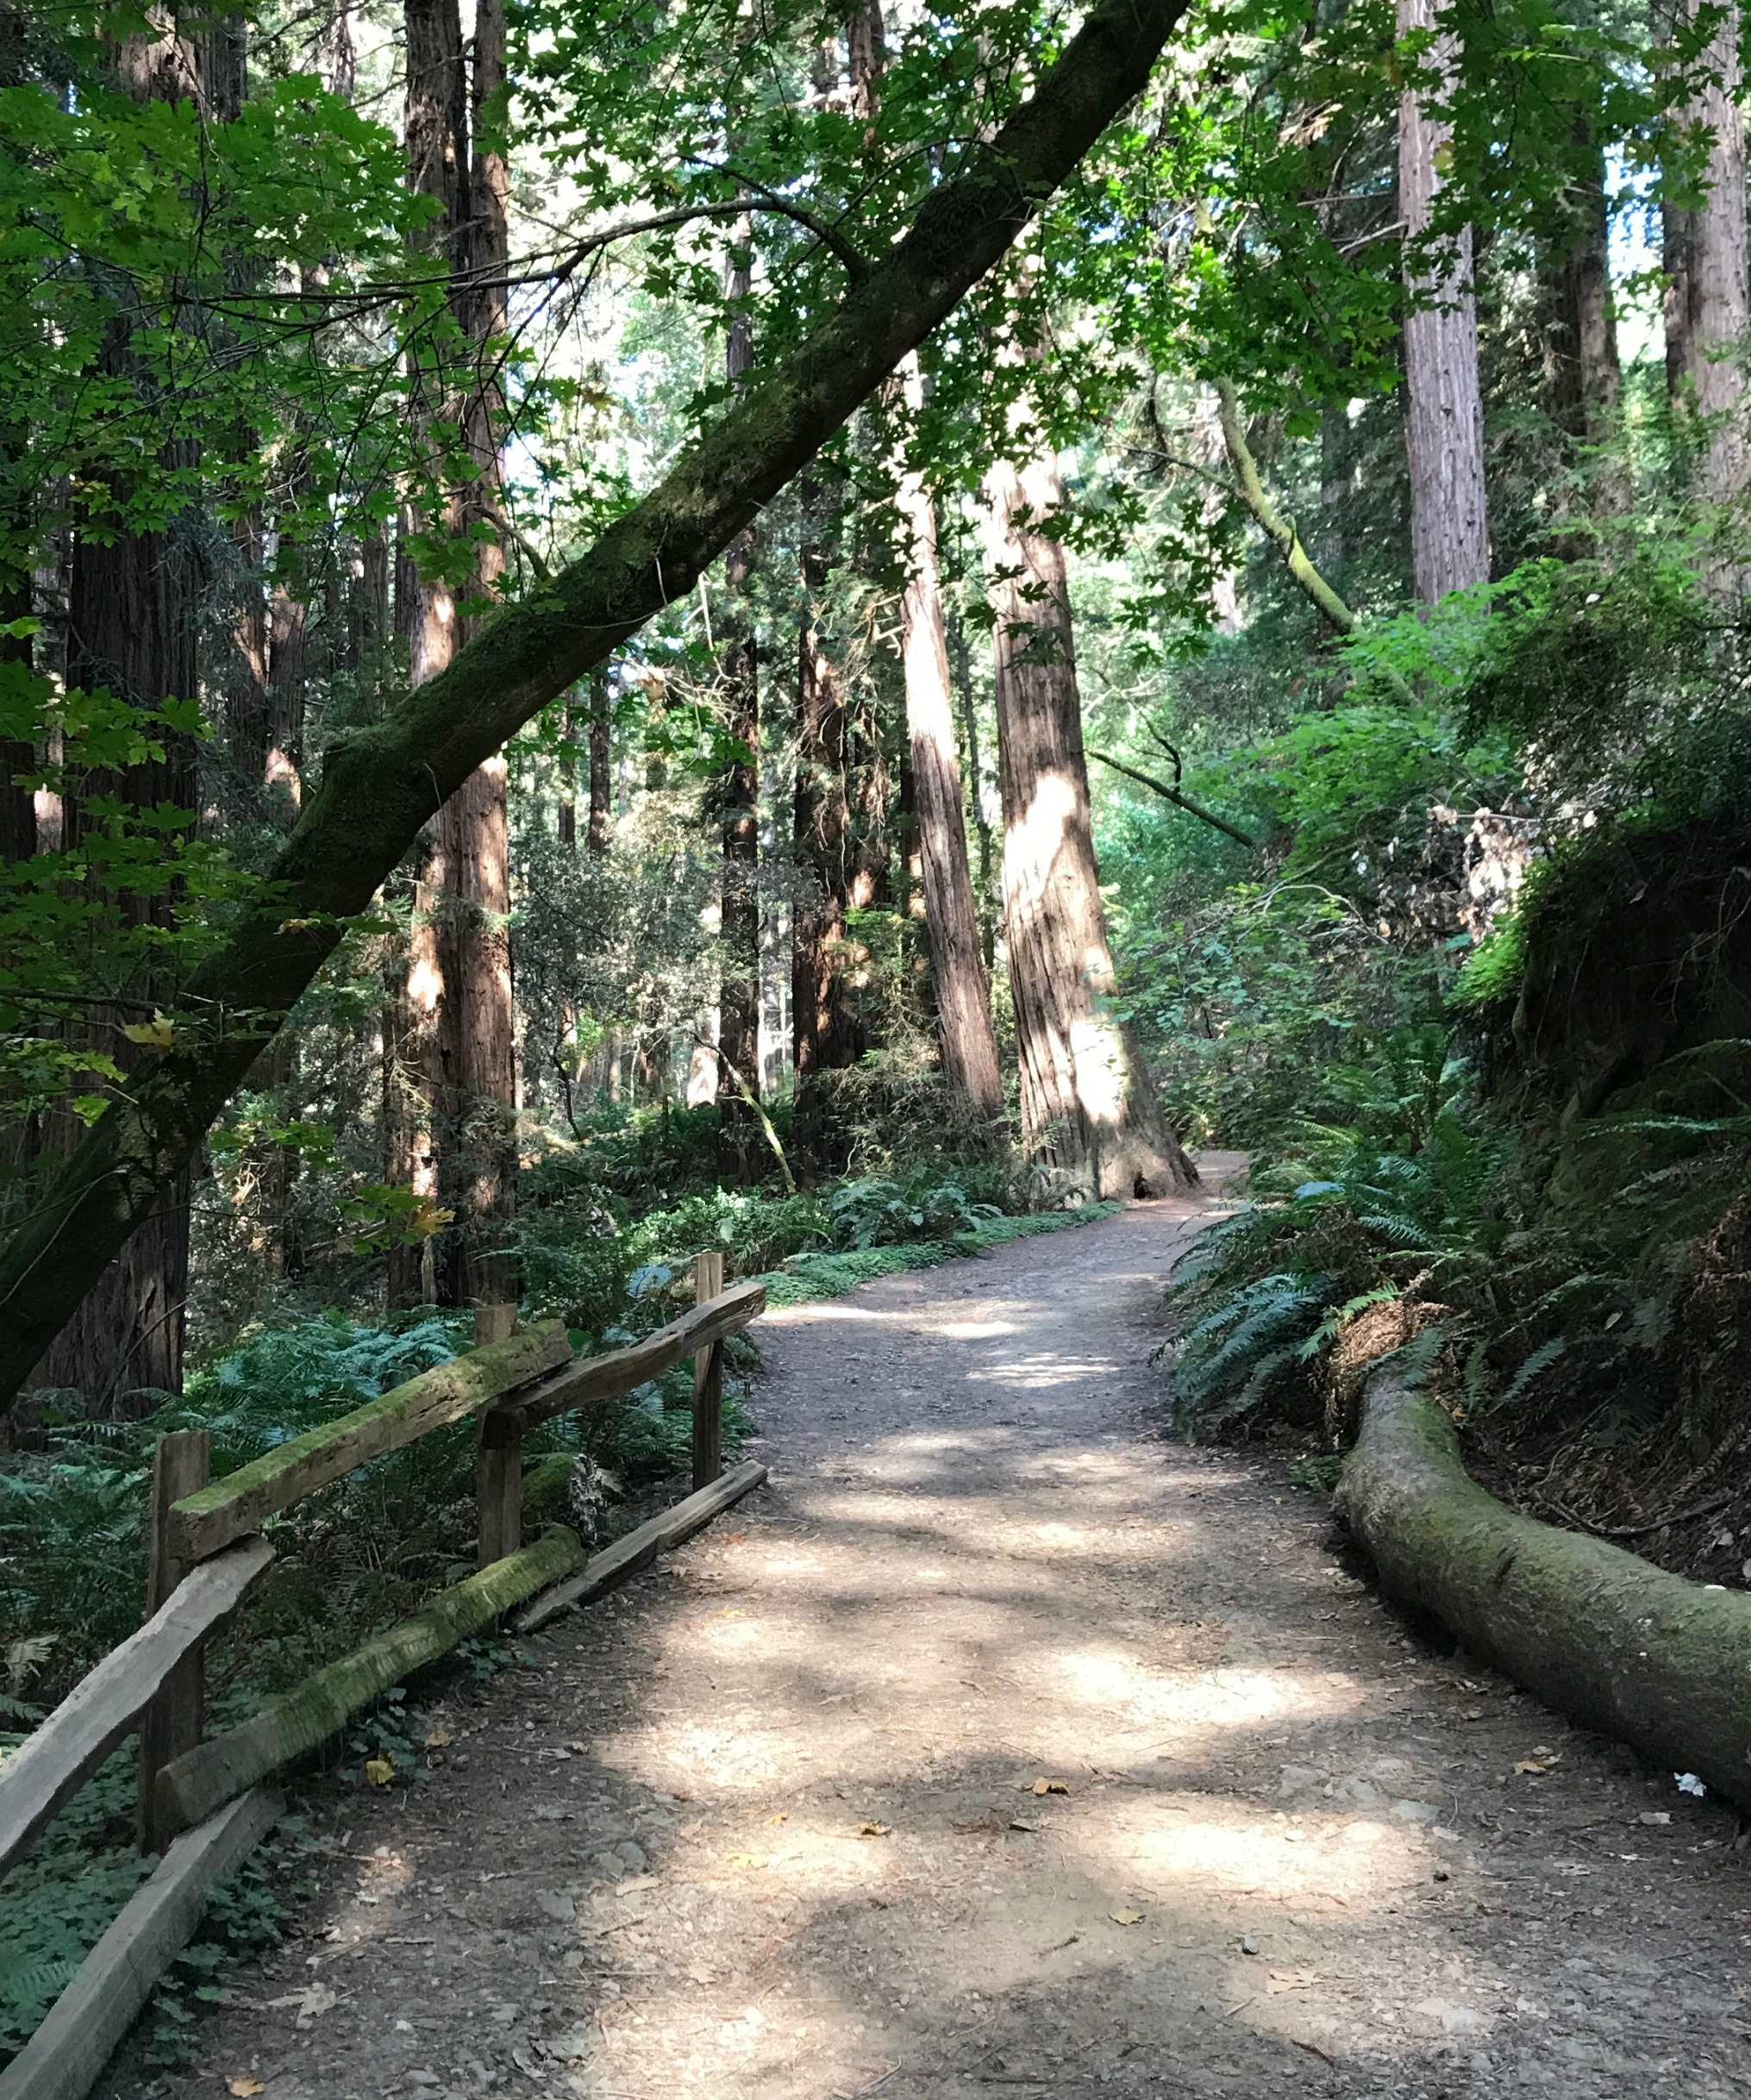 San Francisco's Urban National Parks - Muir Woods 1